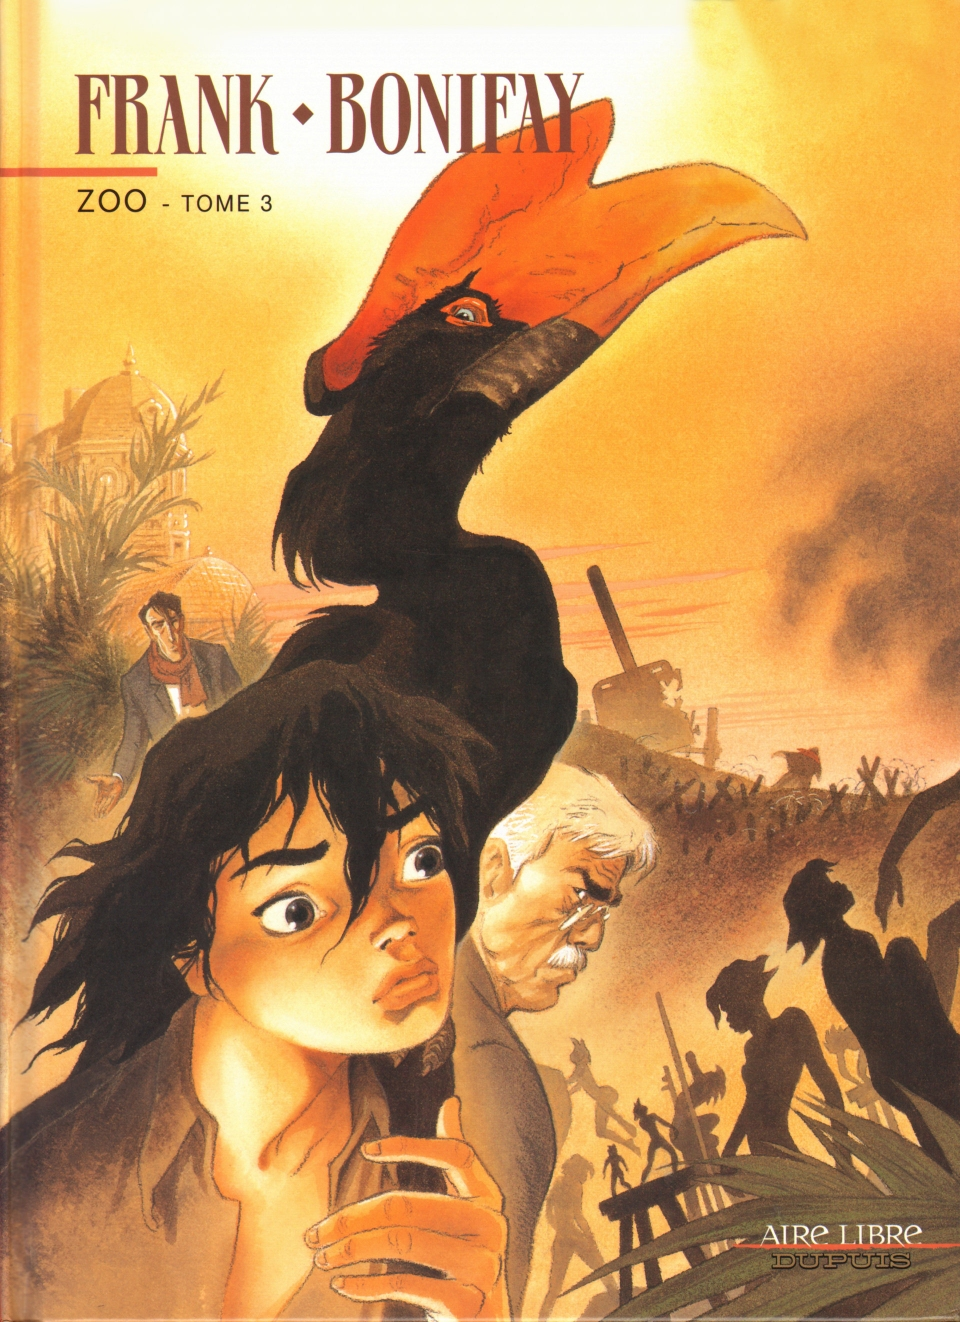 ZOO - Tome 3